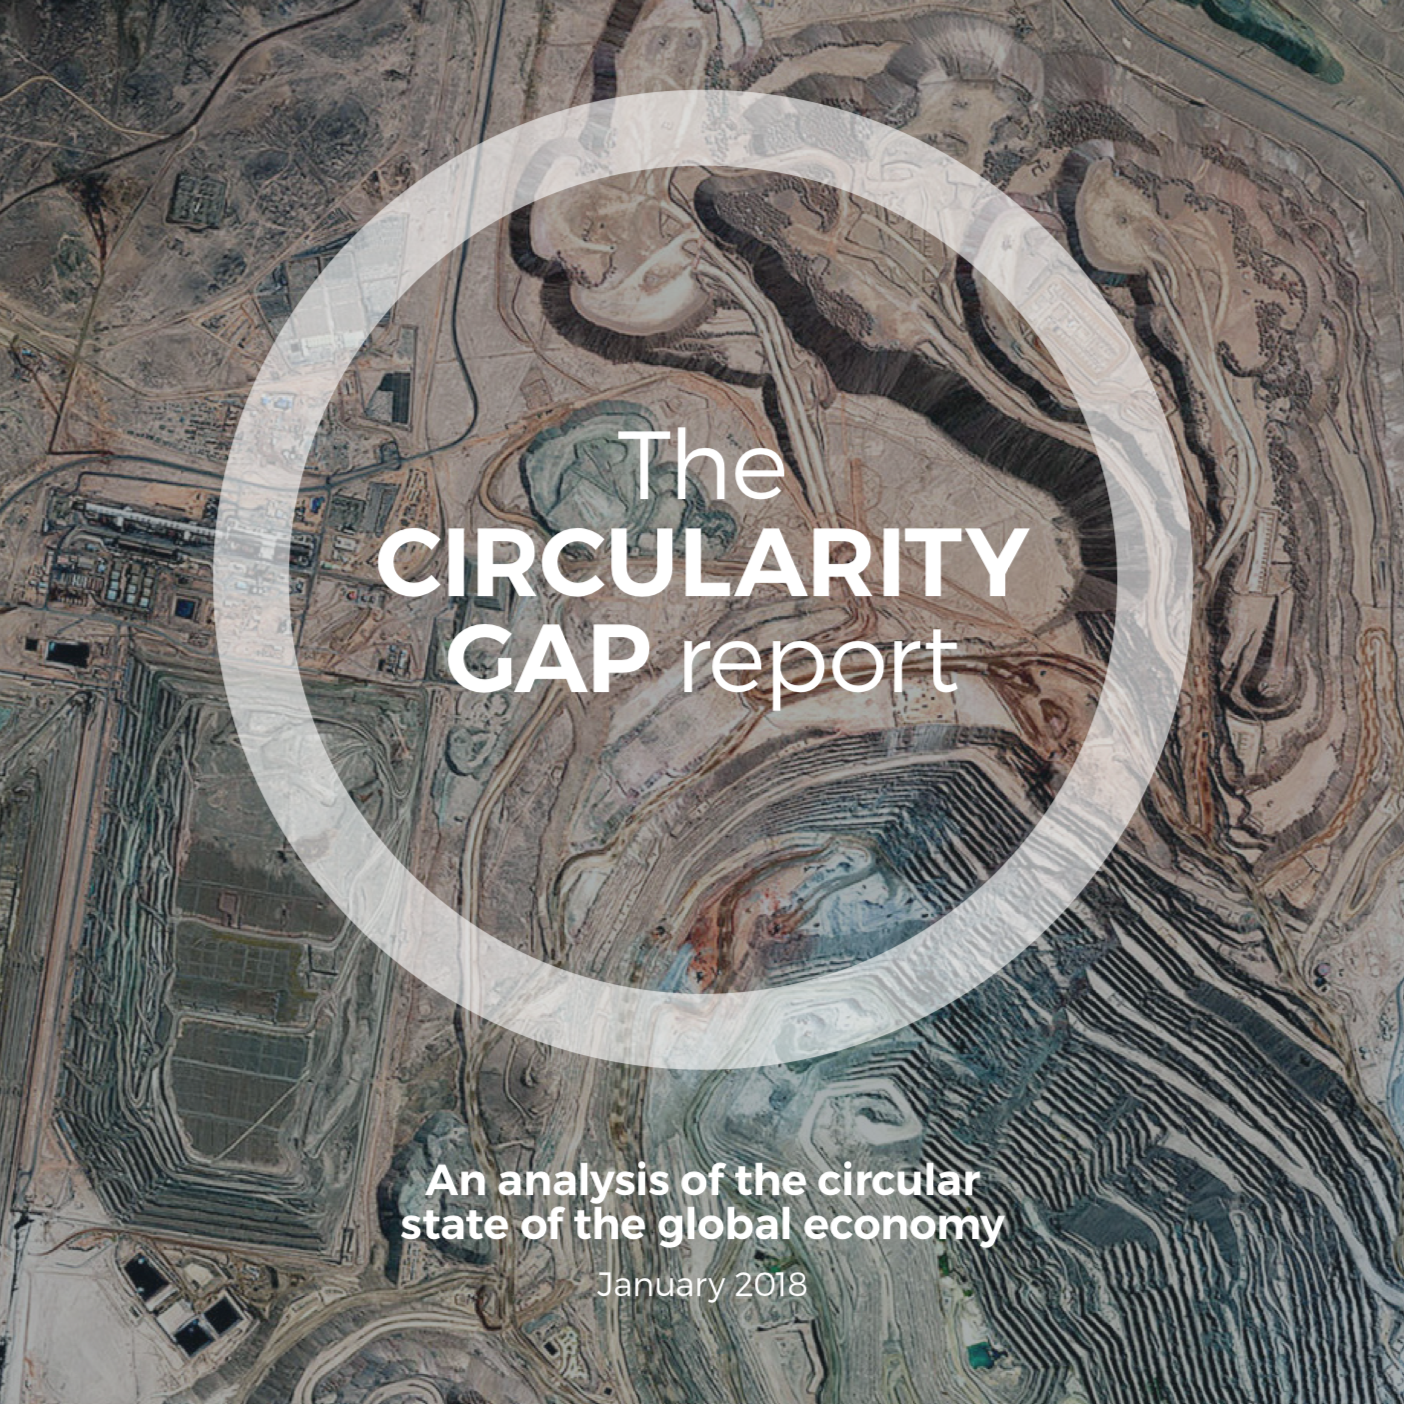 Interesting reading, January 2018    The CIRCULARITY GAP report     By: Circle Economy   An analysis of the circular state of the global economy.